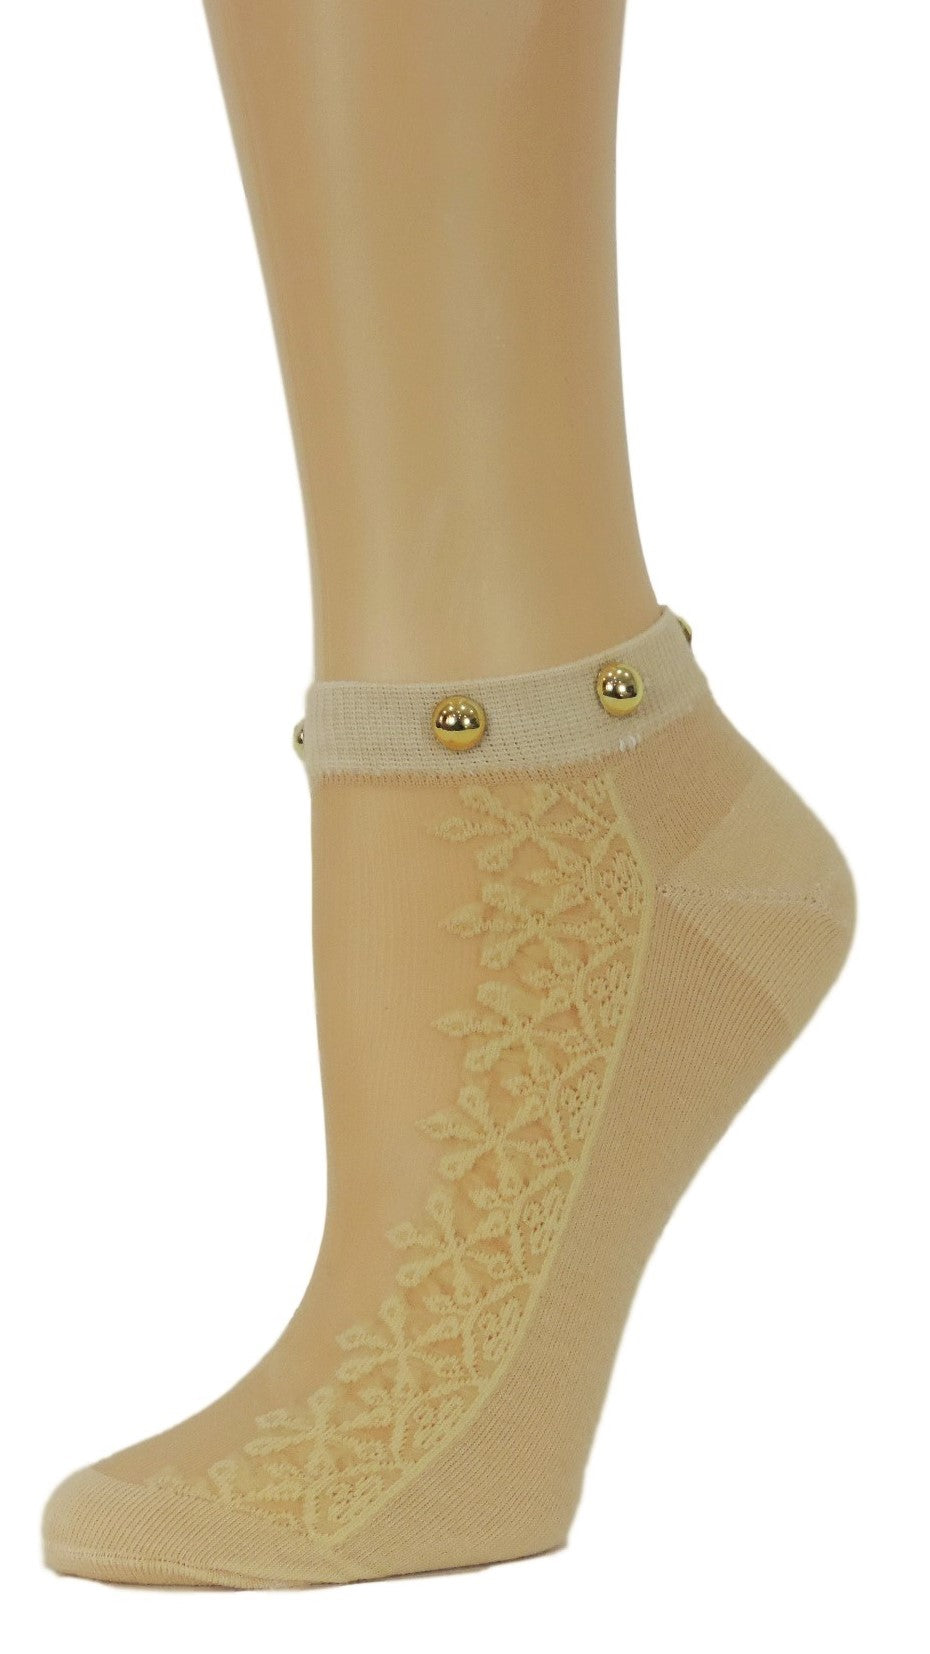 Sequence Floral Ankle Custom Sheer Socks with beads - Global Trendz Fashion®